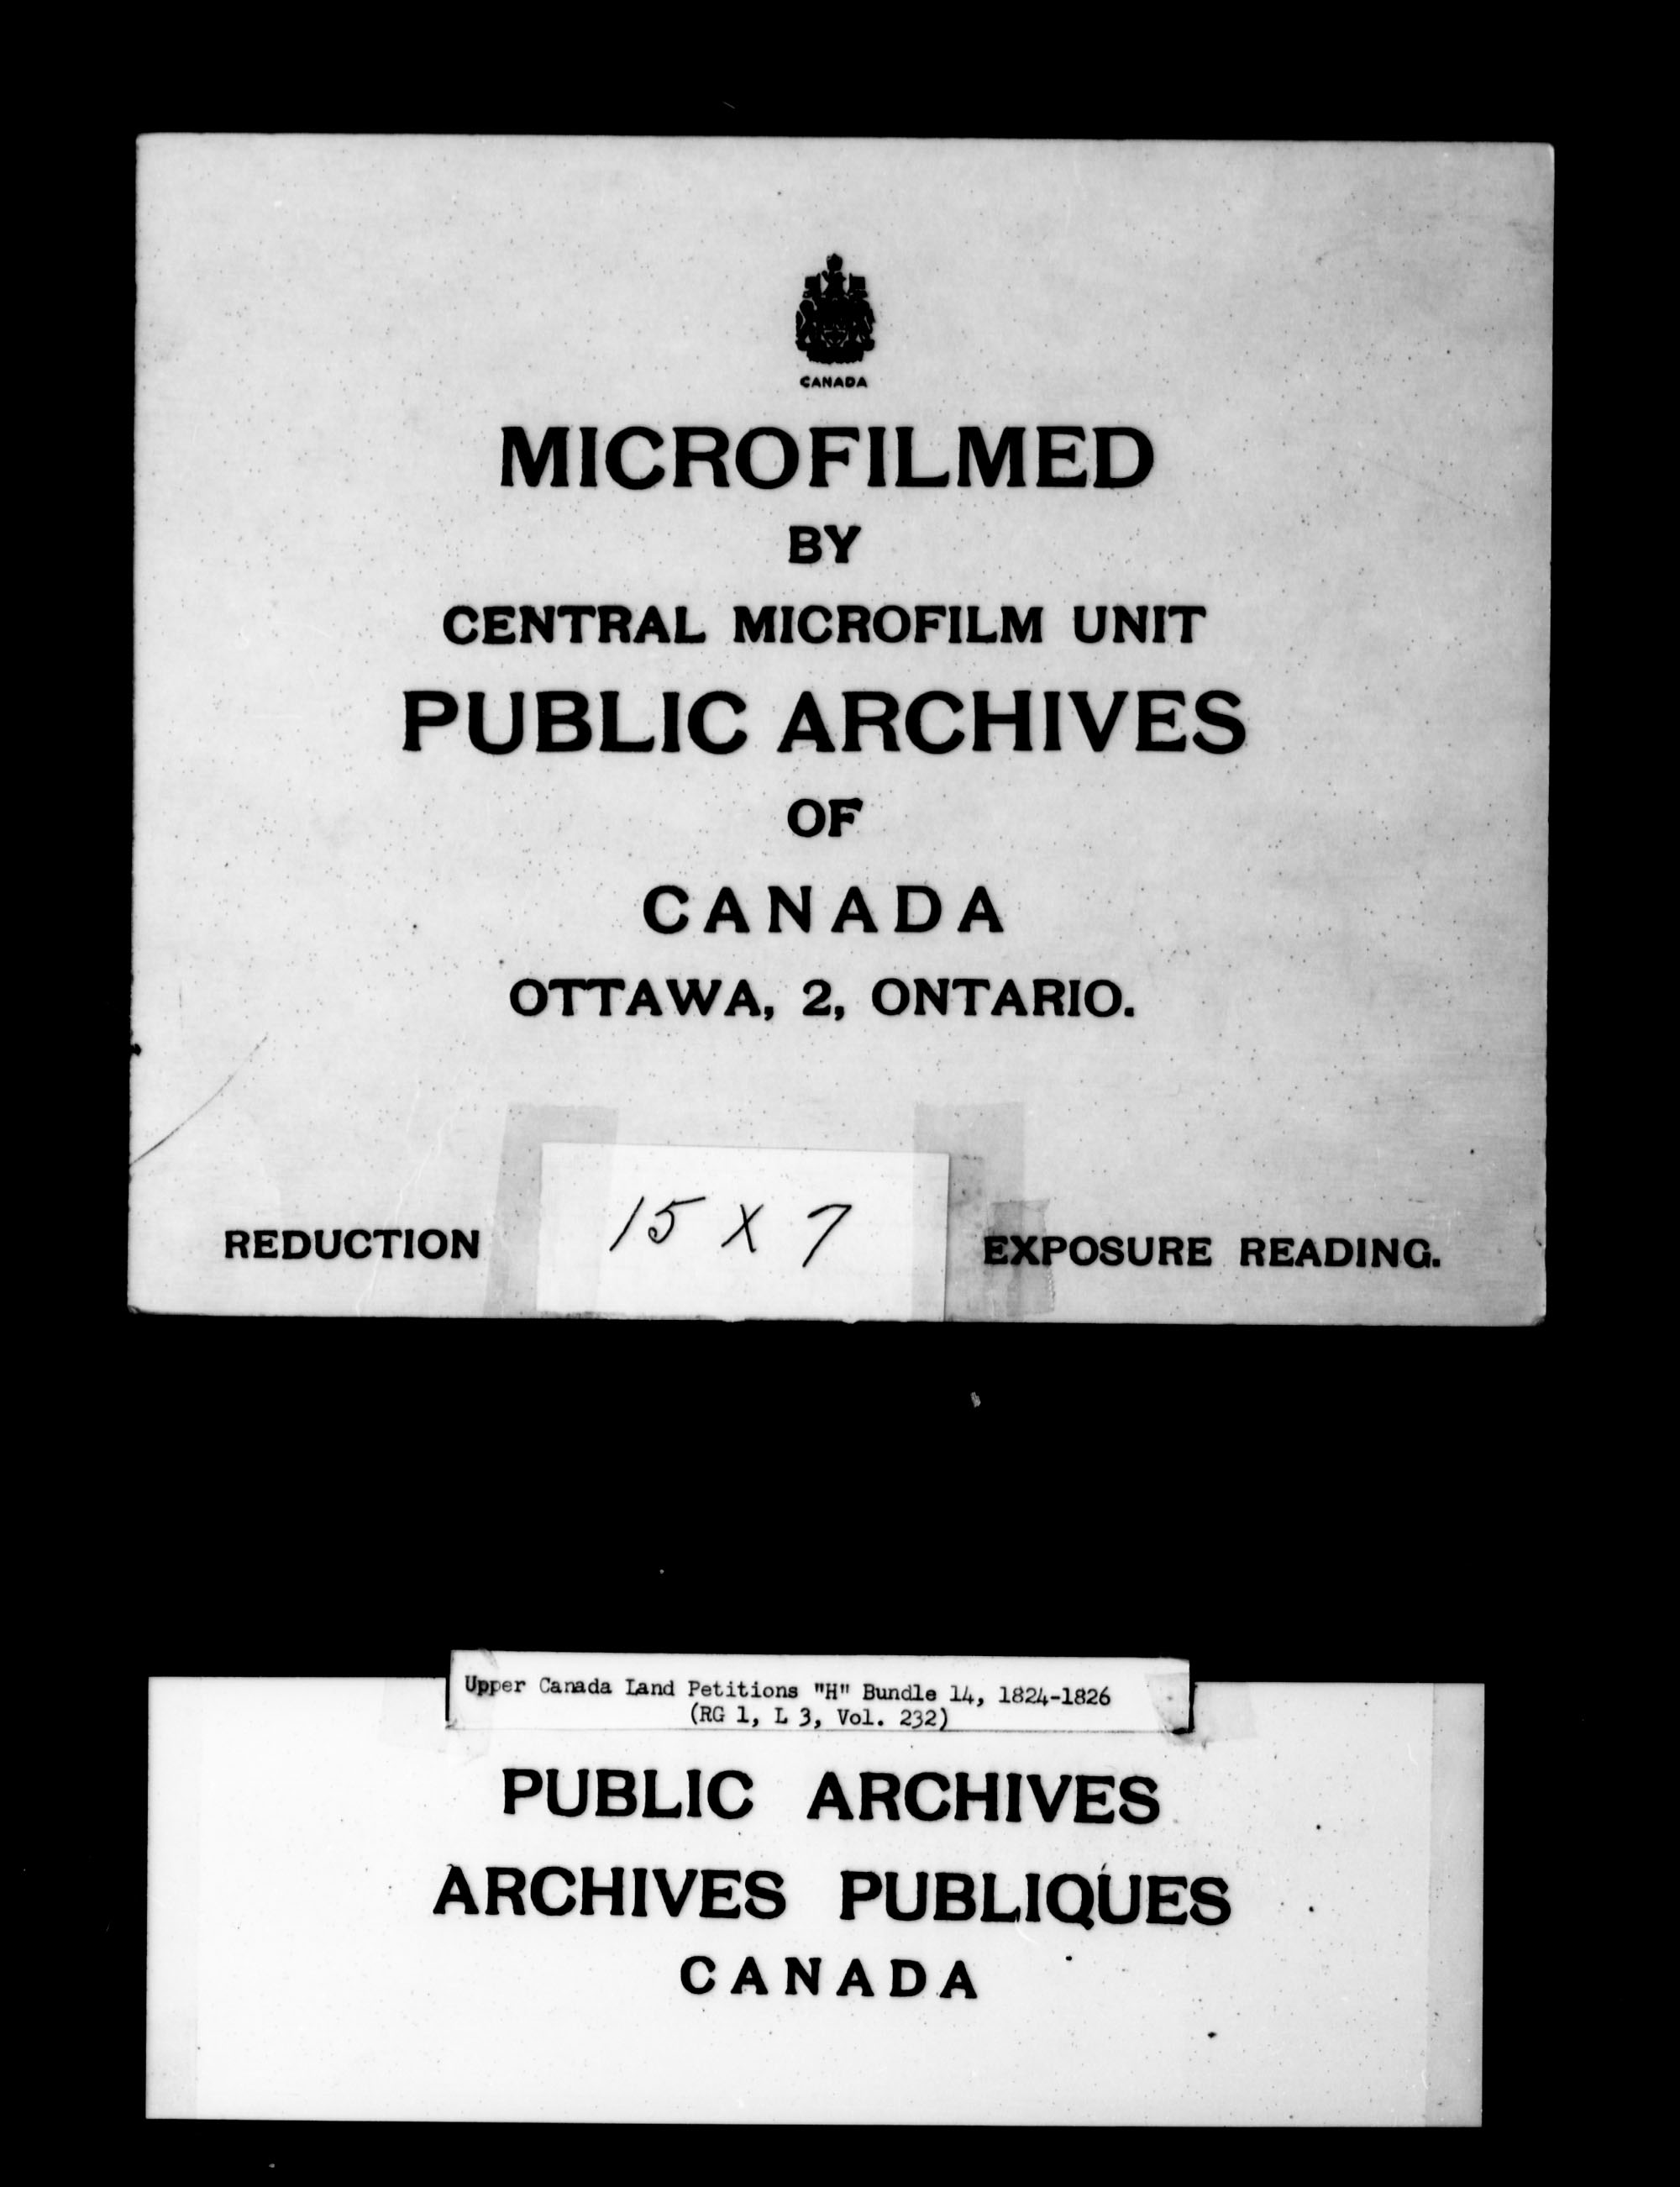 Title: Upper Canada Land Petitions (1763-1865) - Mikan Number: 205131 - Microform: c-2050